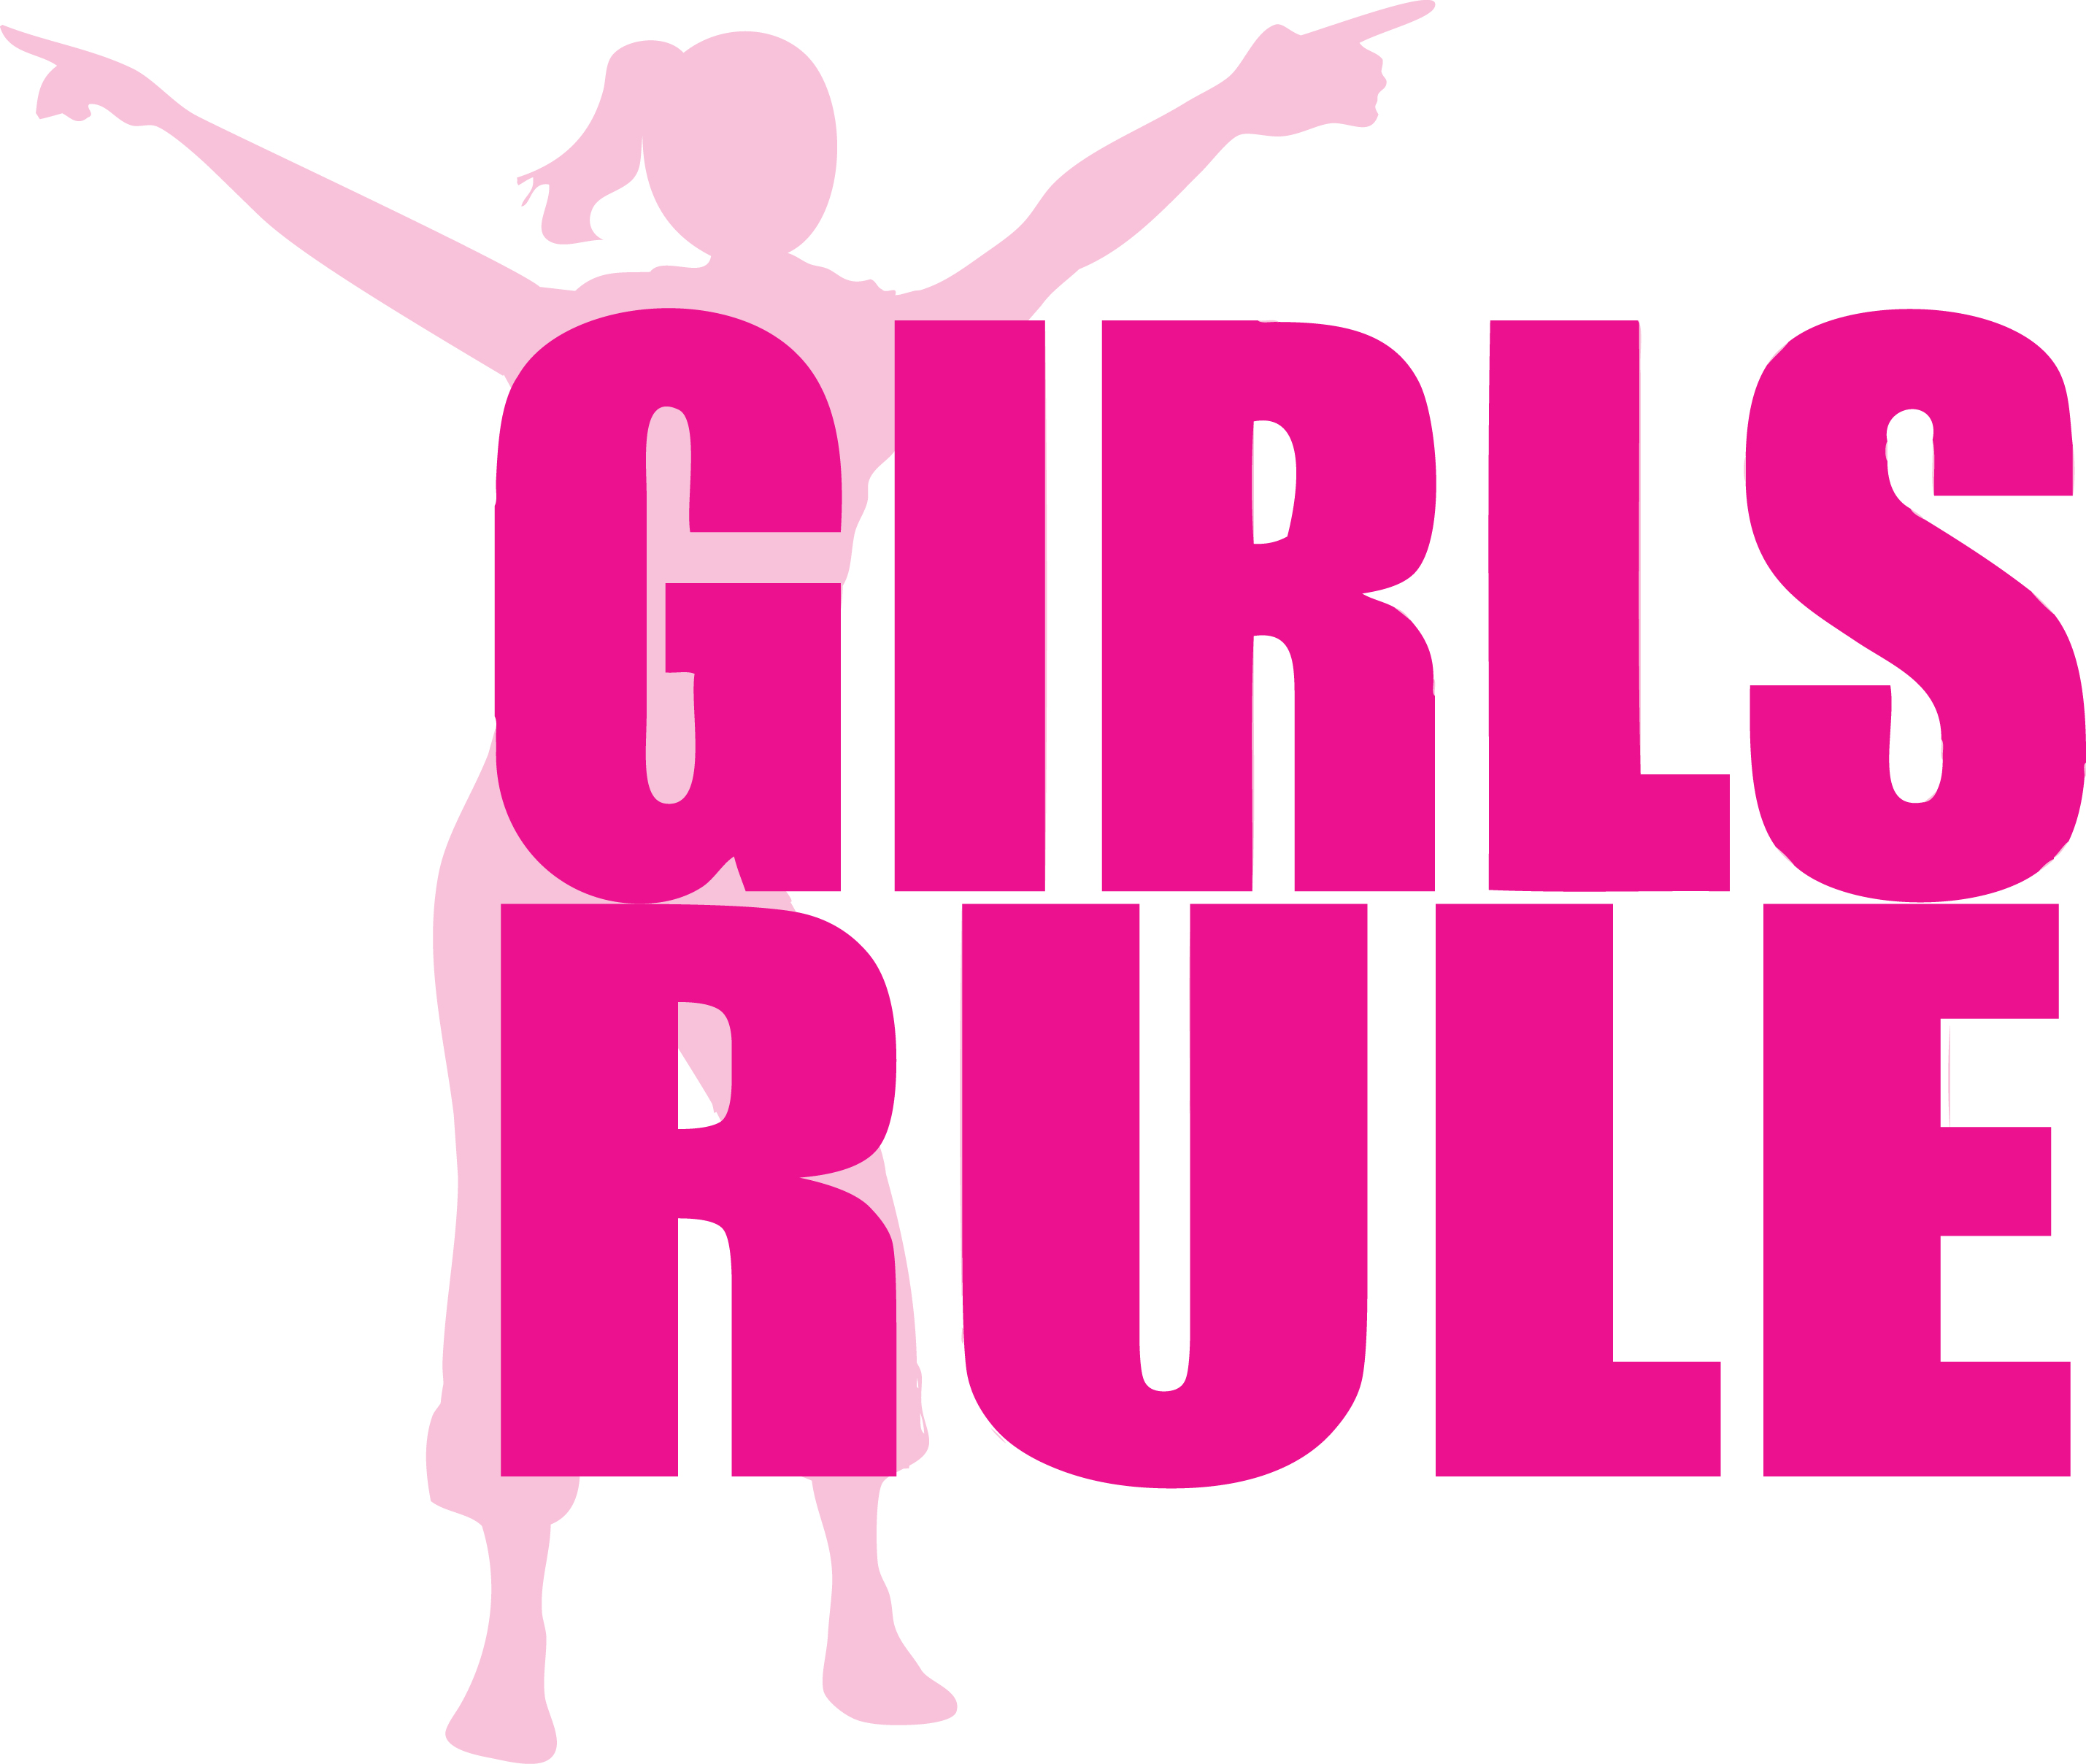 Girls Rule Images